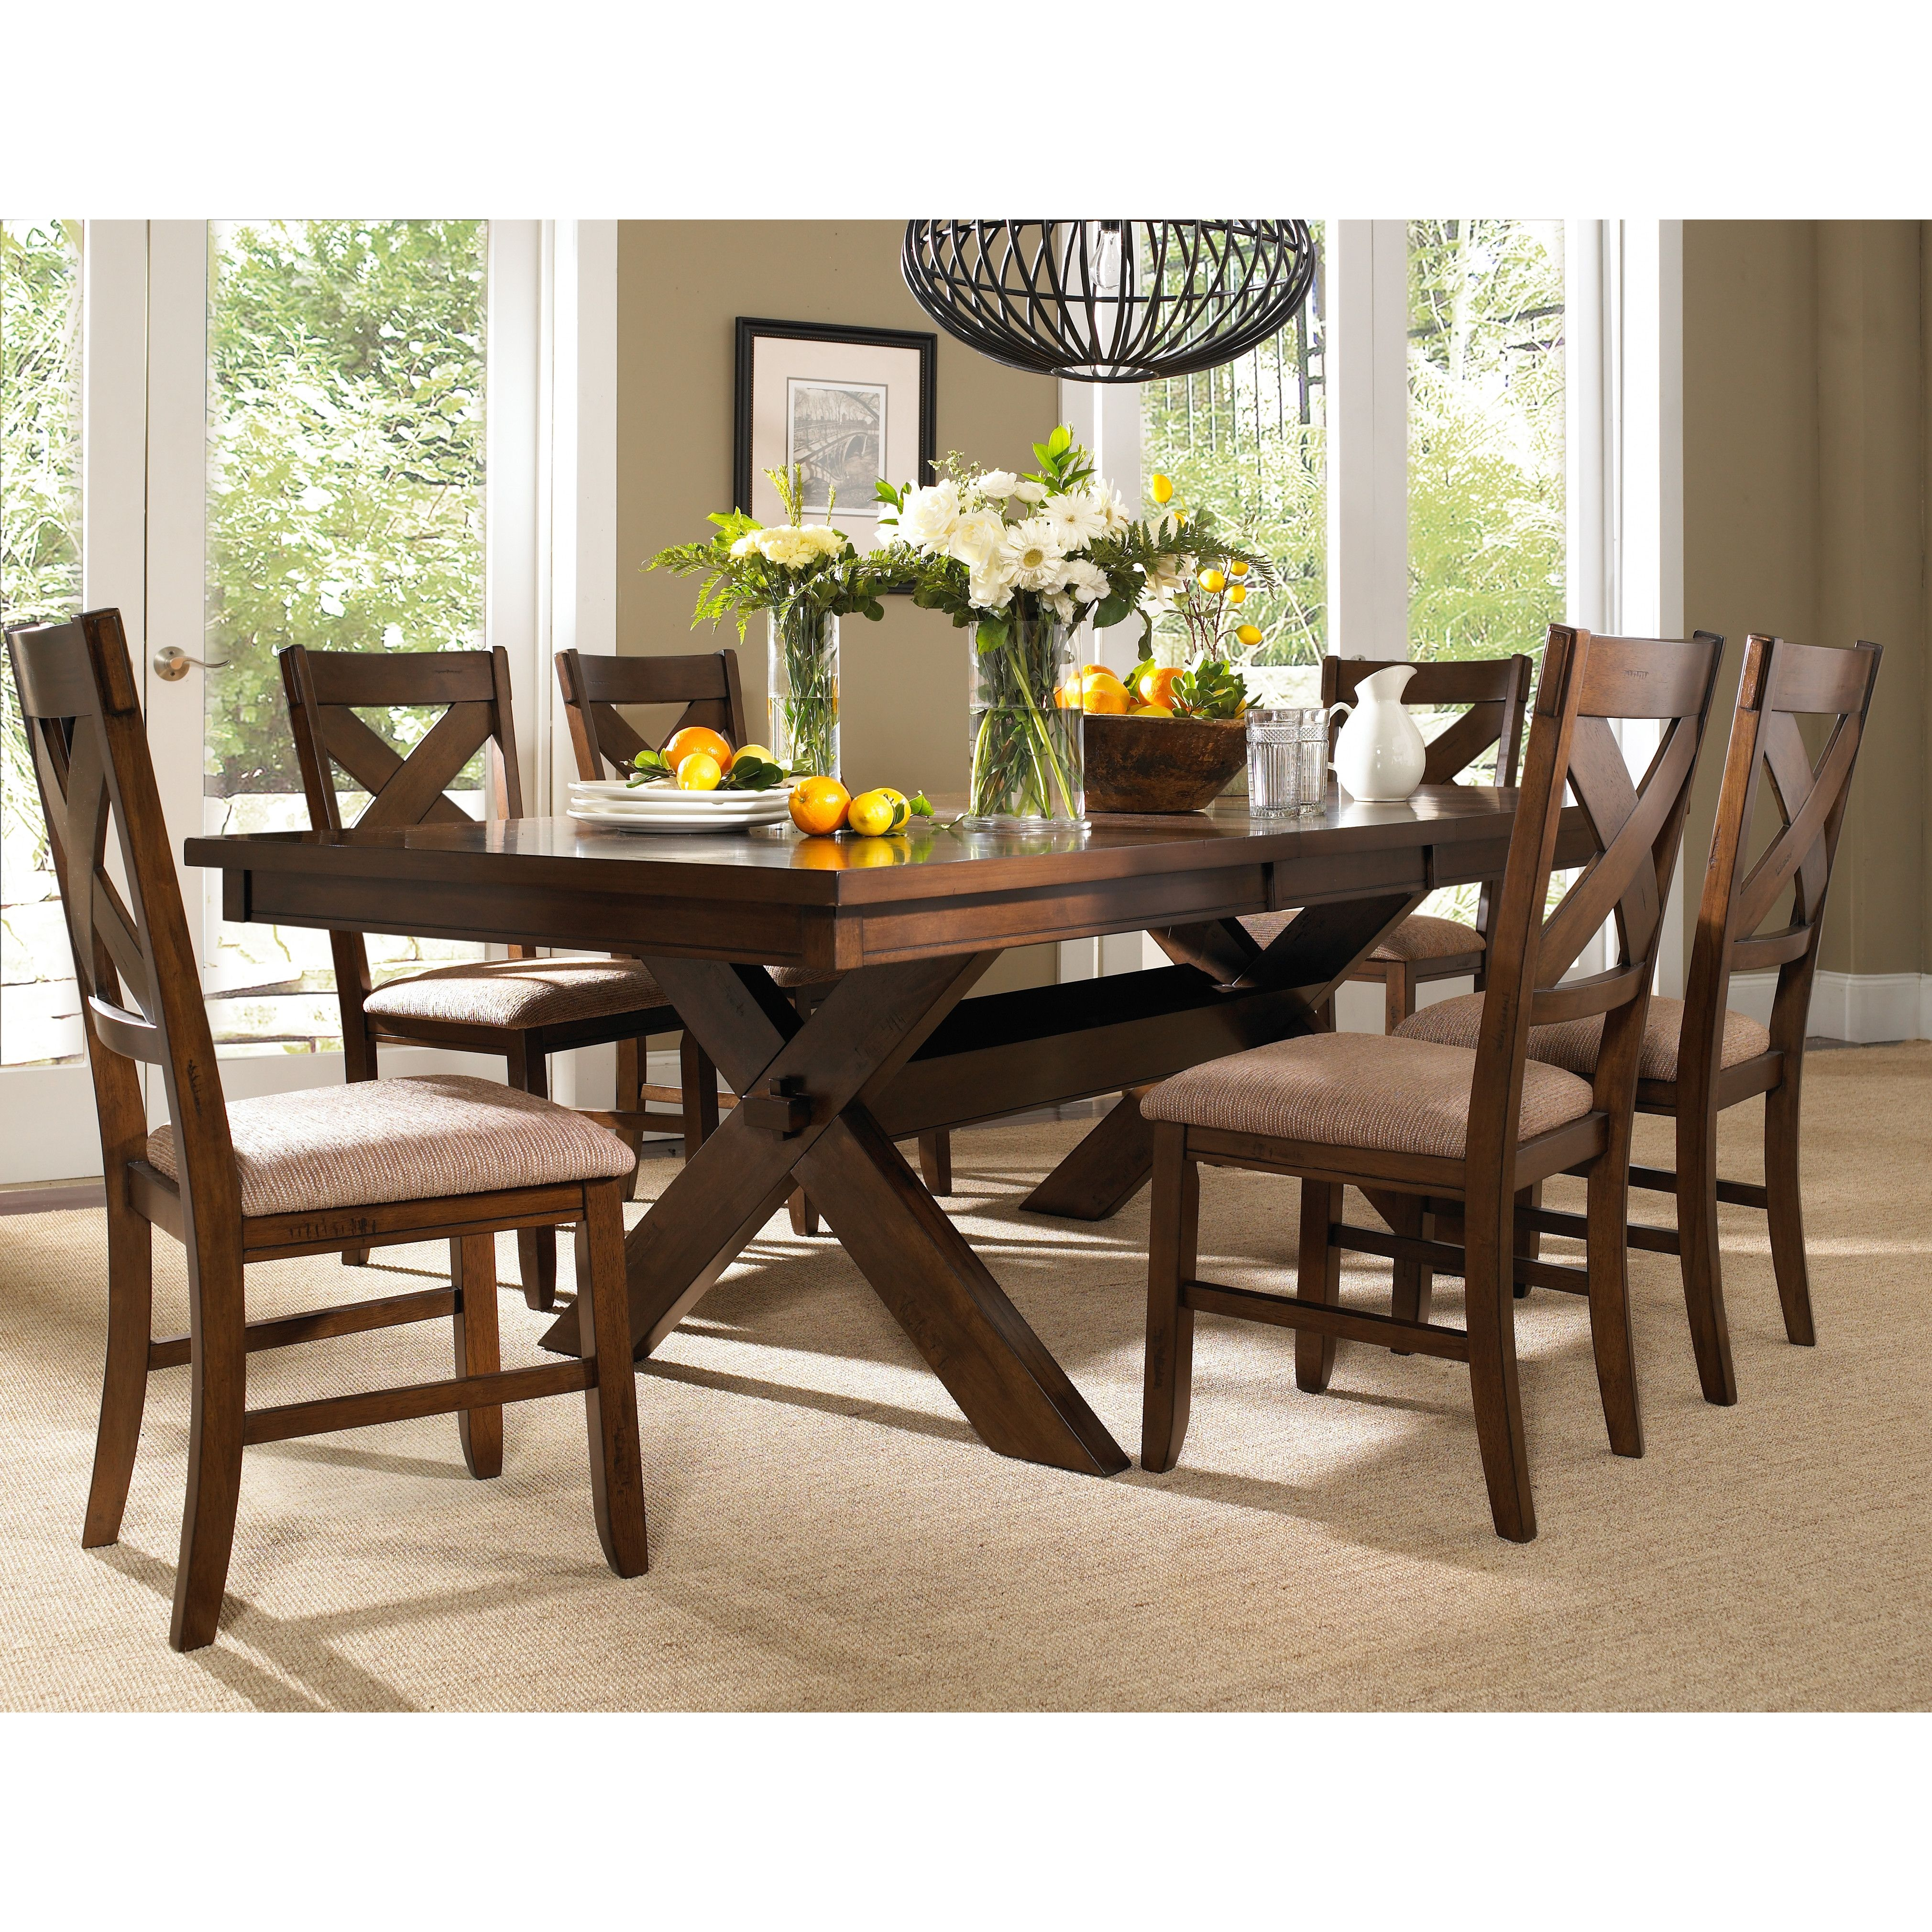 Isabell 7 Piece Dining Set | Modern farmhouse, Colors and Chairs